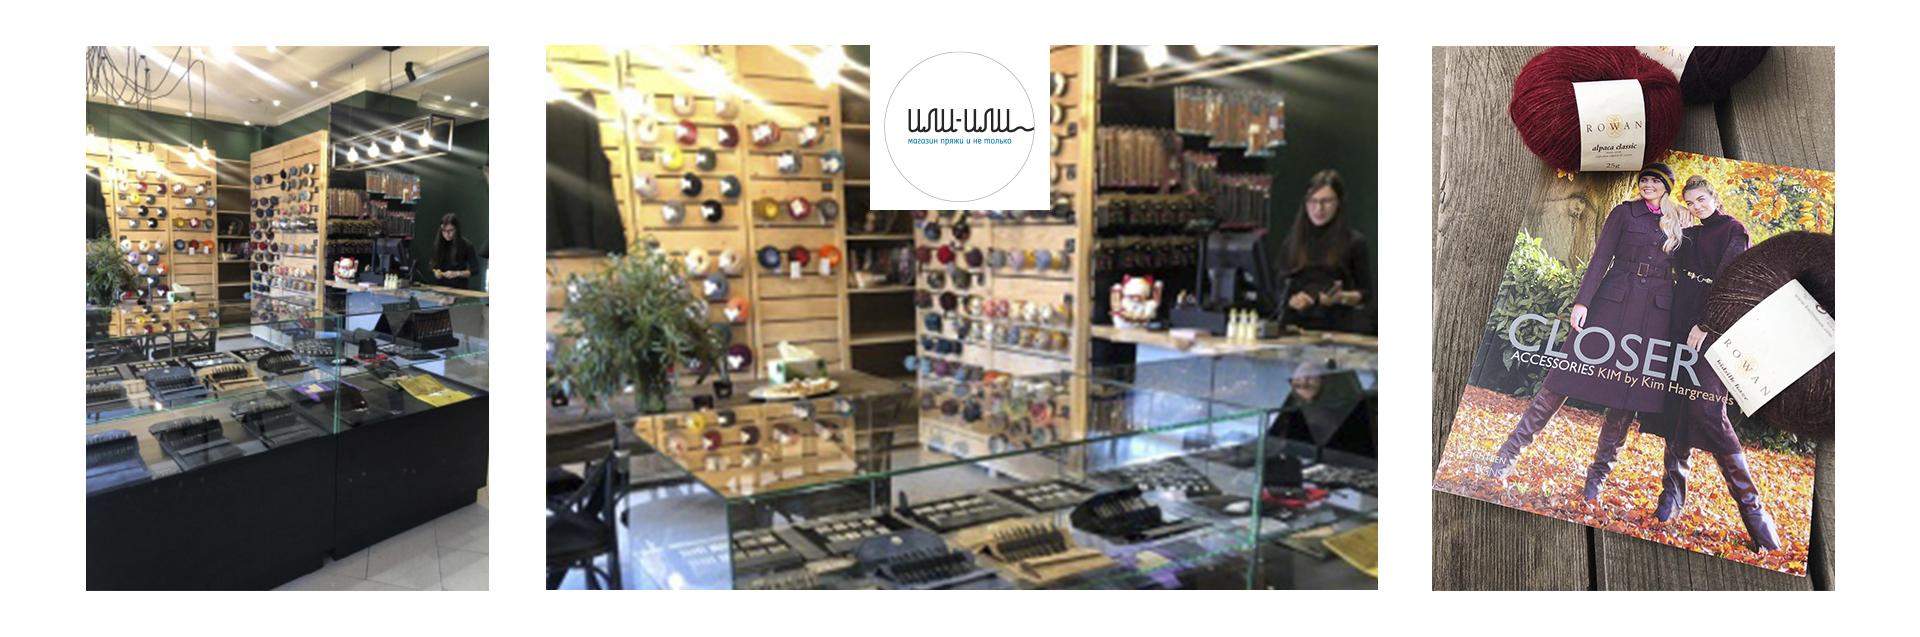 """Our salon-shop """"Ili-Ili"""" presents high-quality products for needlework from leading manufacturers."""